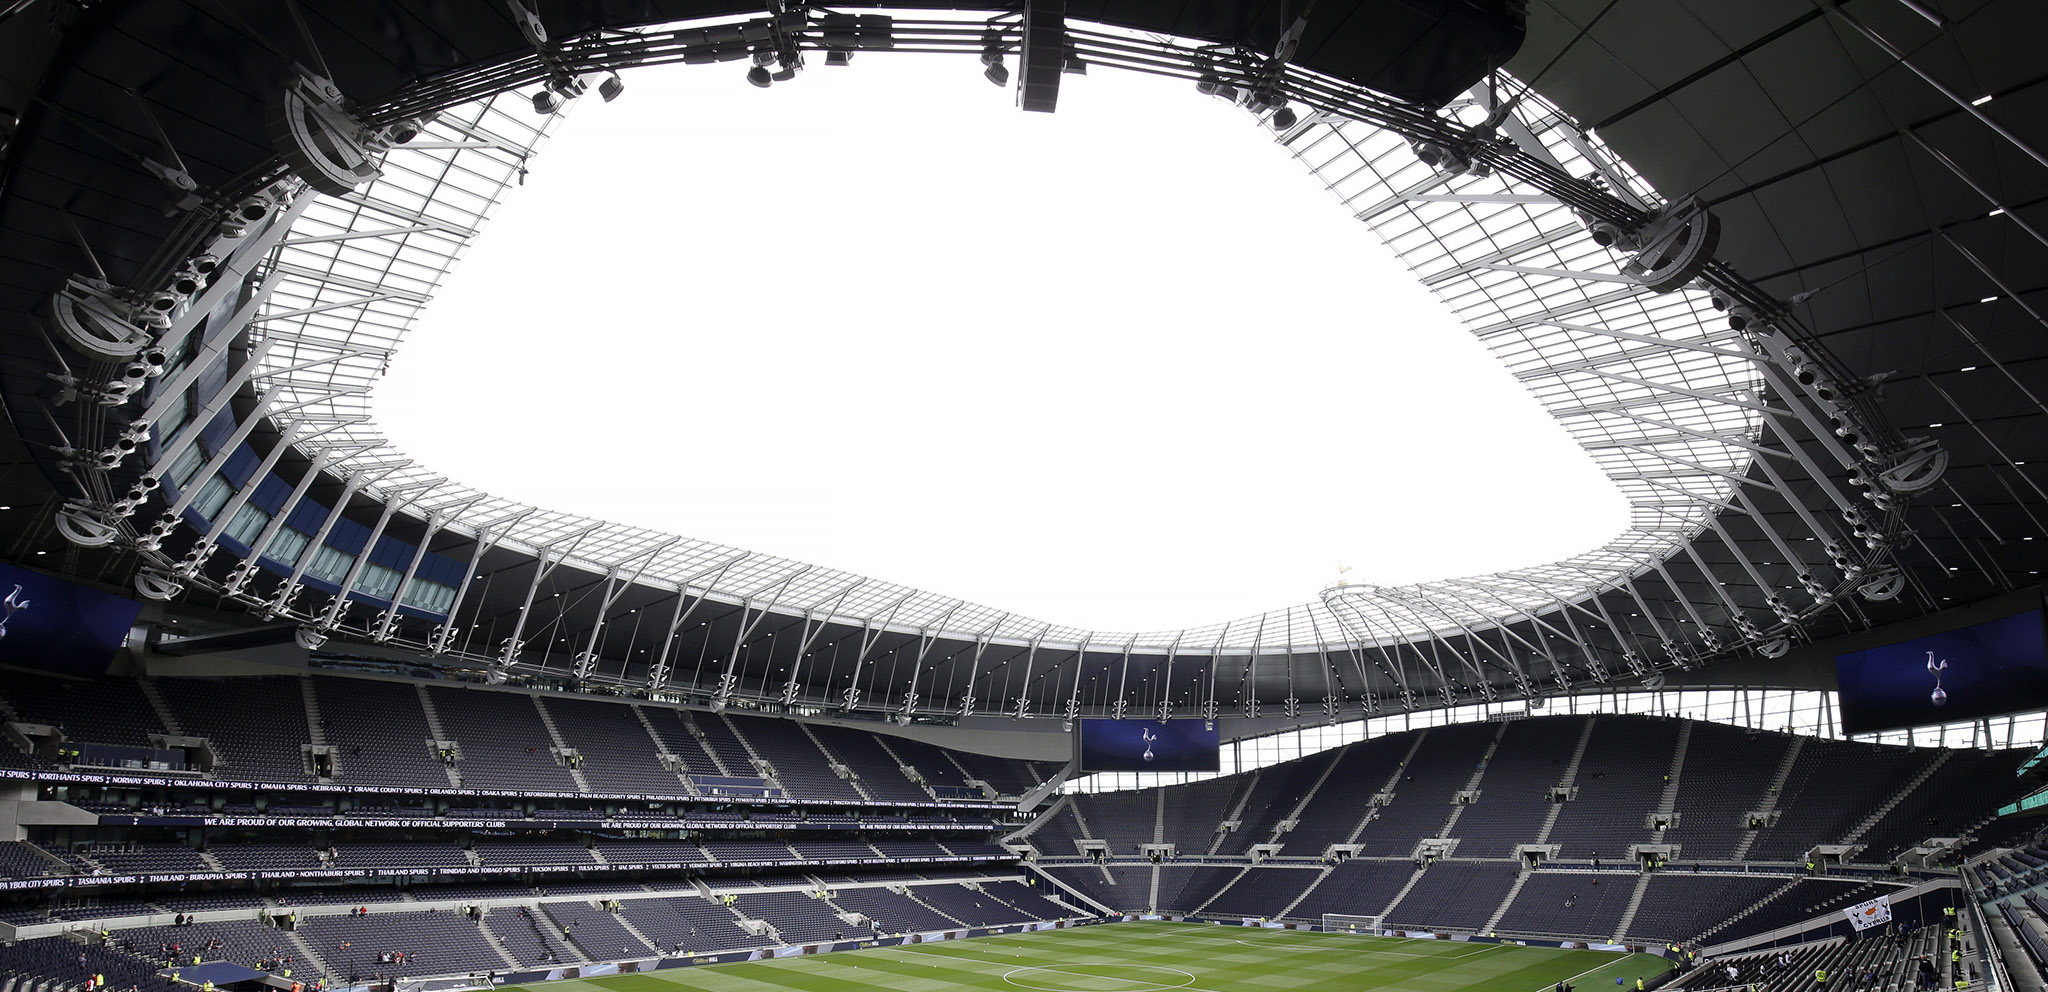 Guns N Roses Second Date Added At New Stadium Tickets On Sale Now Tottenham Hotspur